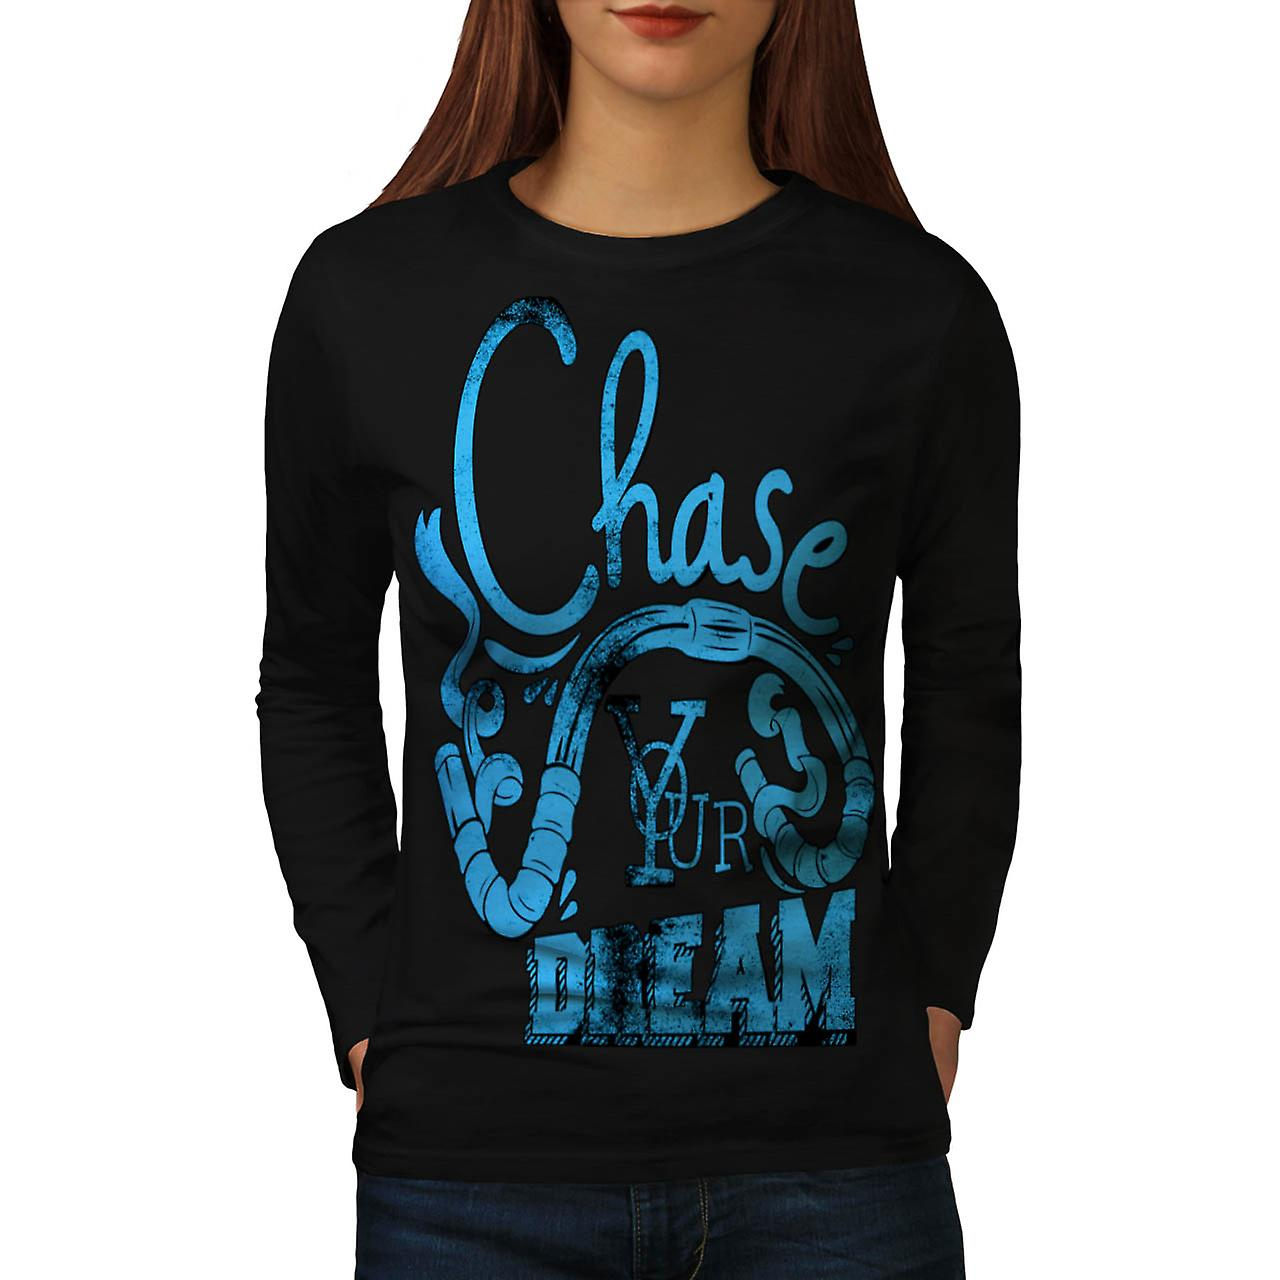 Chase Your Dream Gym Handle Bar Women Black Long Sleeve T-shirt | Wellcoda